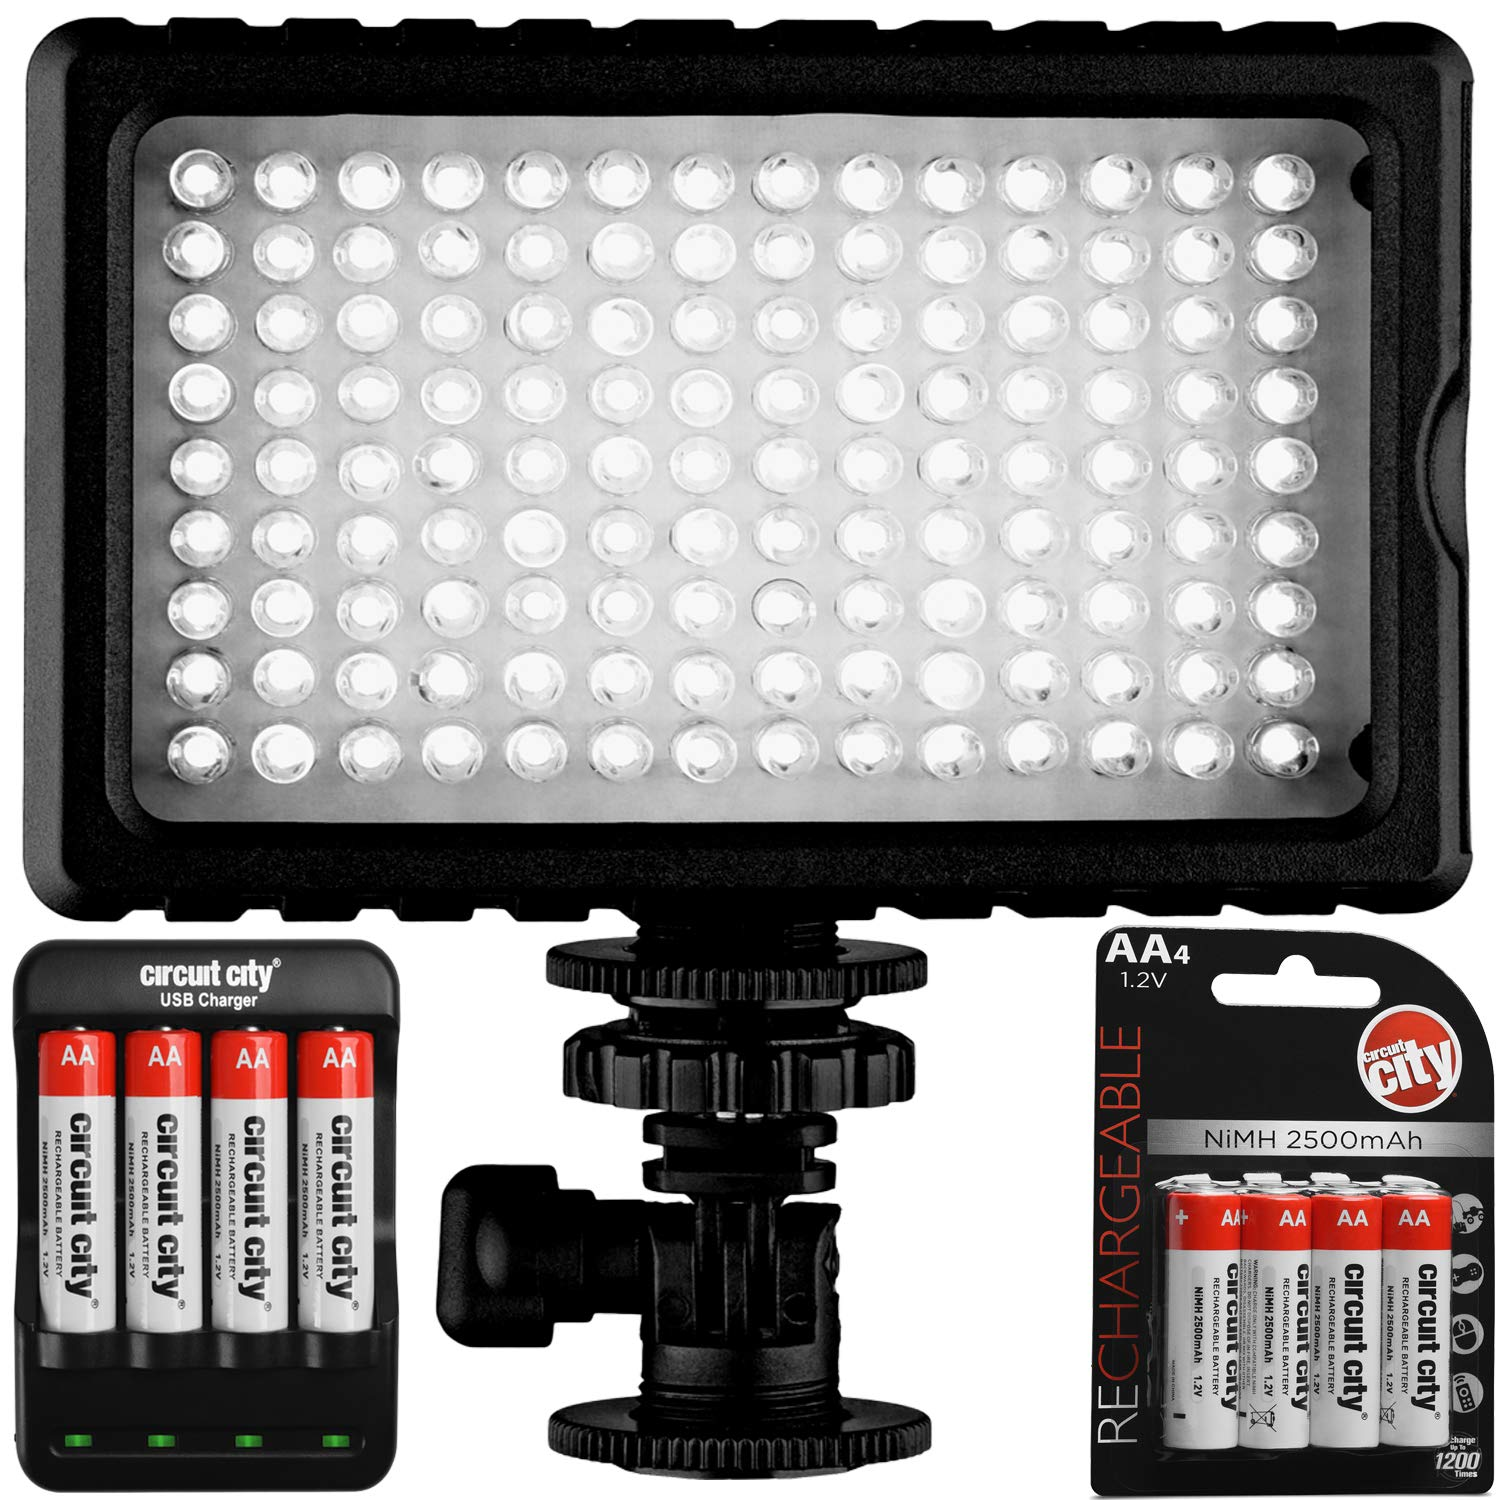 Opteka LT.Box 126 Super Bright Expandable LED Camera Video Light with 2500mAh Rechargeable AA Batteries + USB Charger